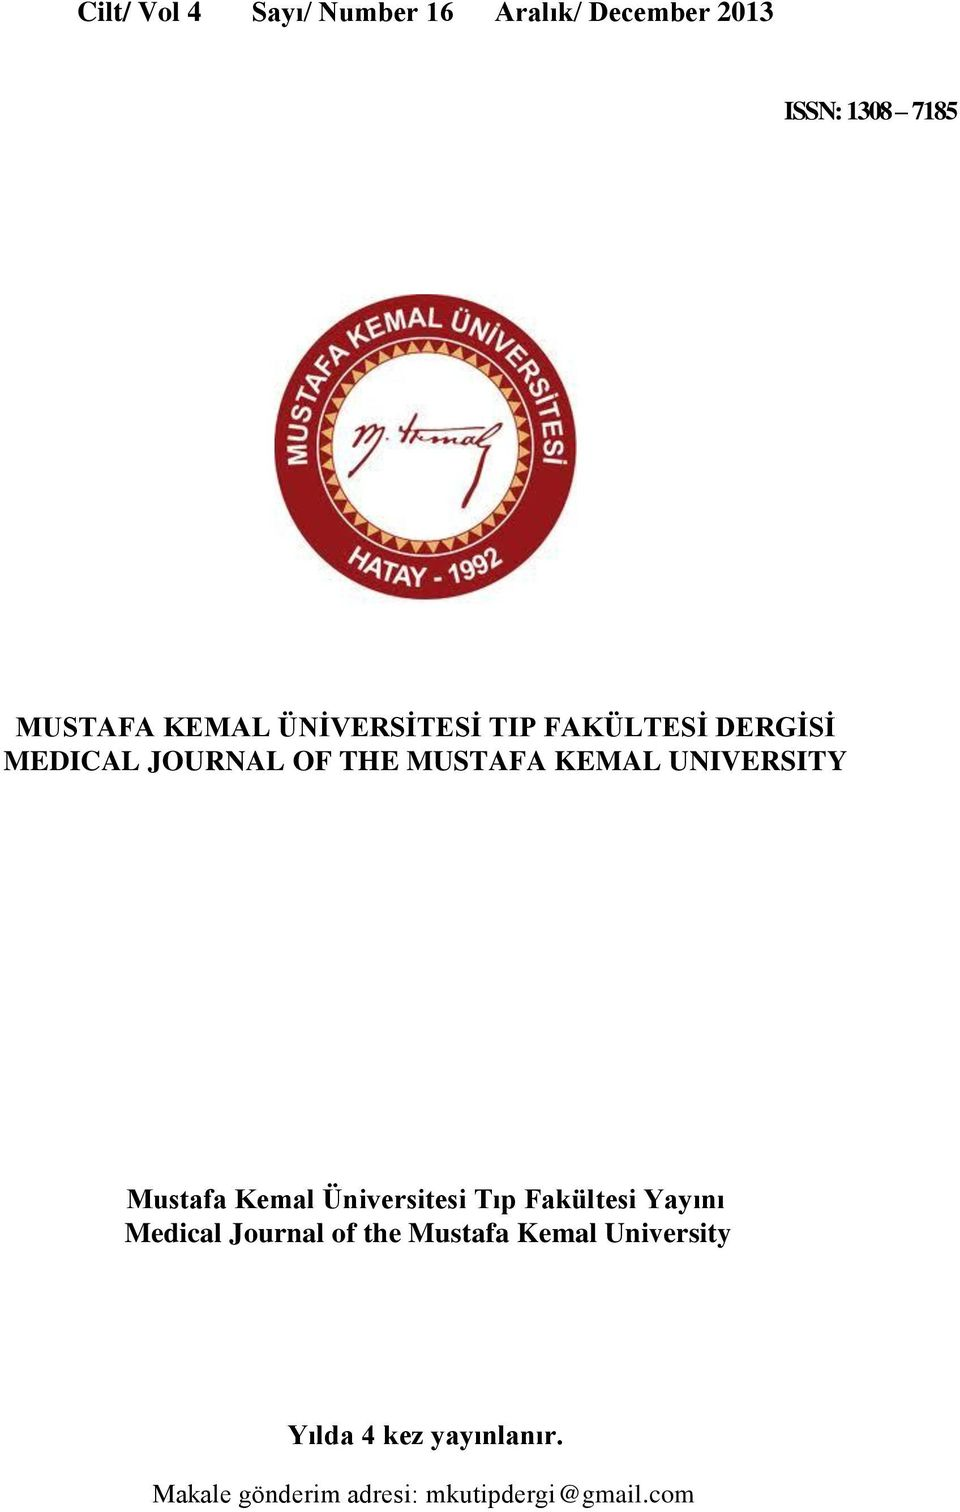 UNIVERSITY Mustafa Kemal Üniversitesi Tıp Fakültesi Yayını Medical Journal of the